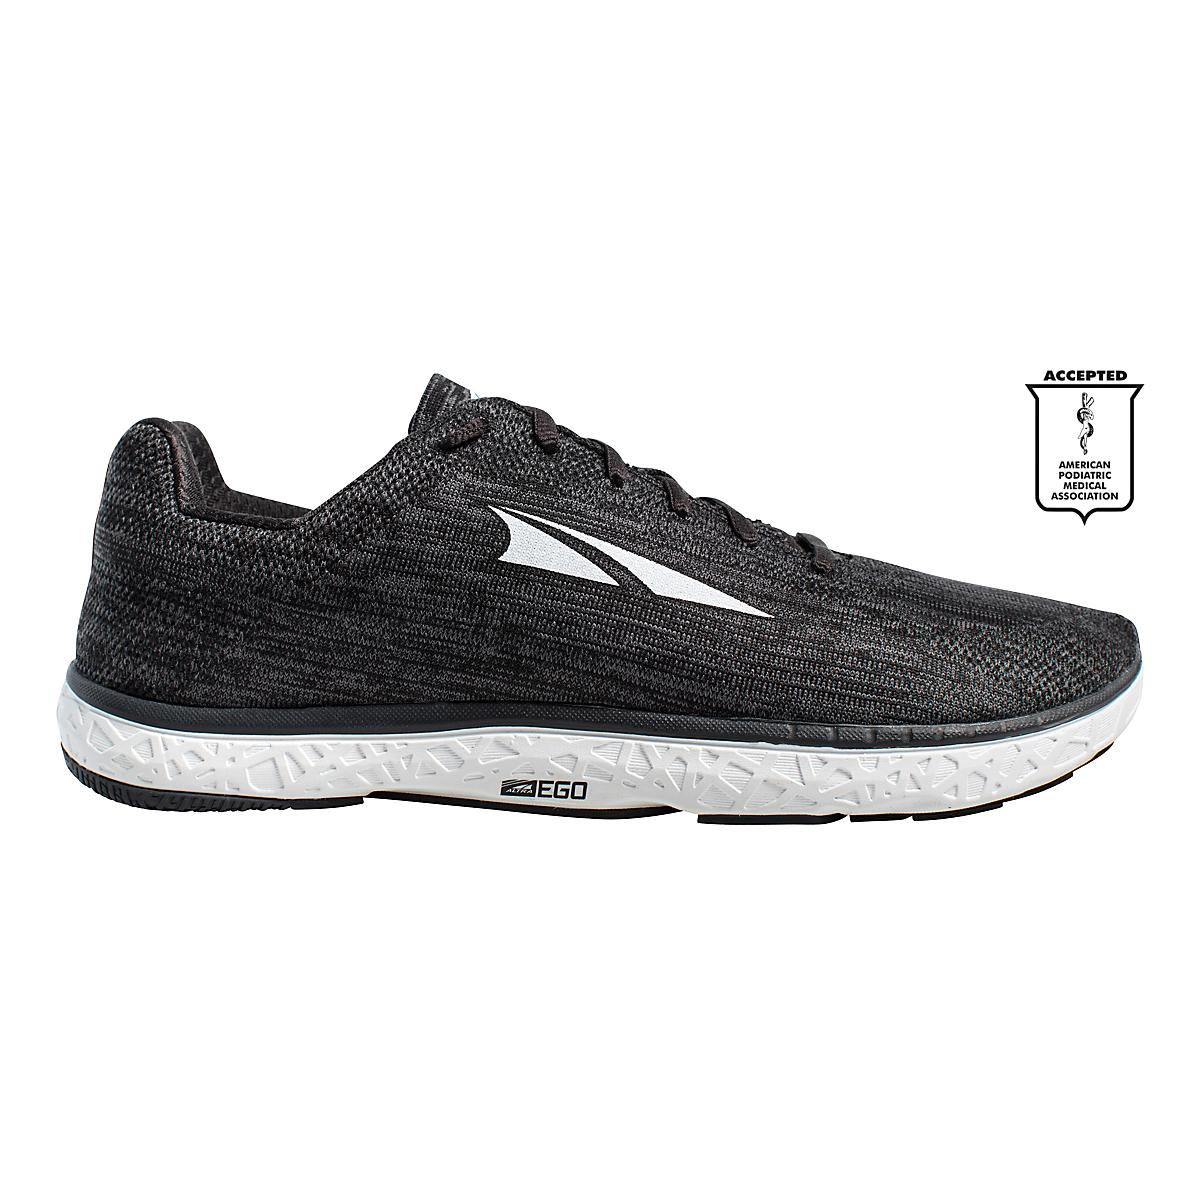 e70364d8d81c3 Altra Escalante Men s Running Shoes for Sale from Road Runner Sports